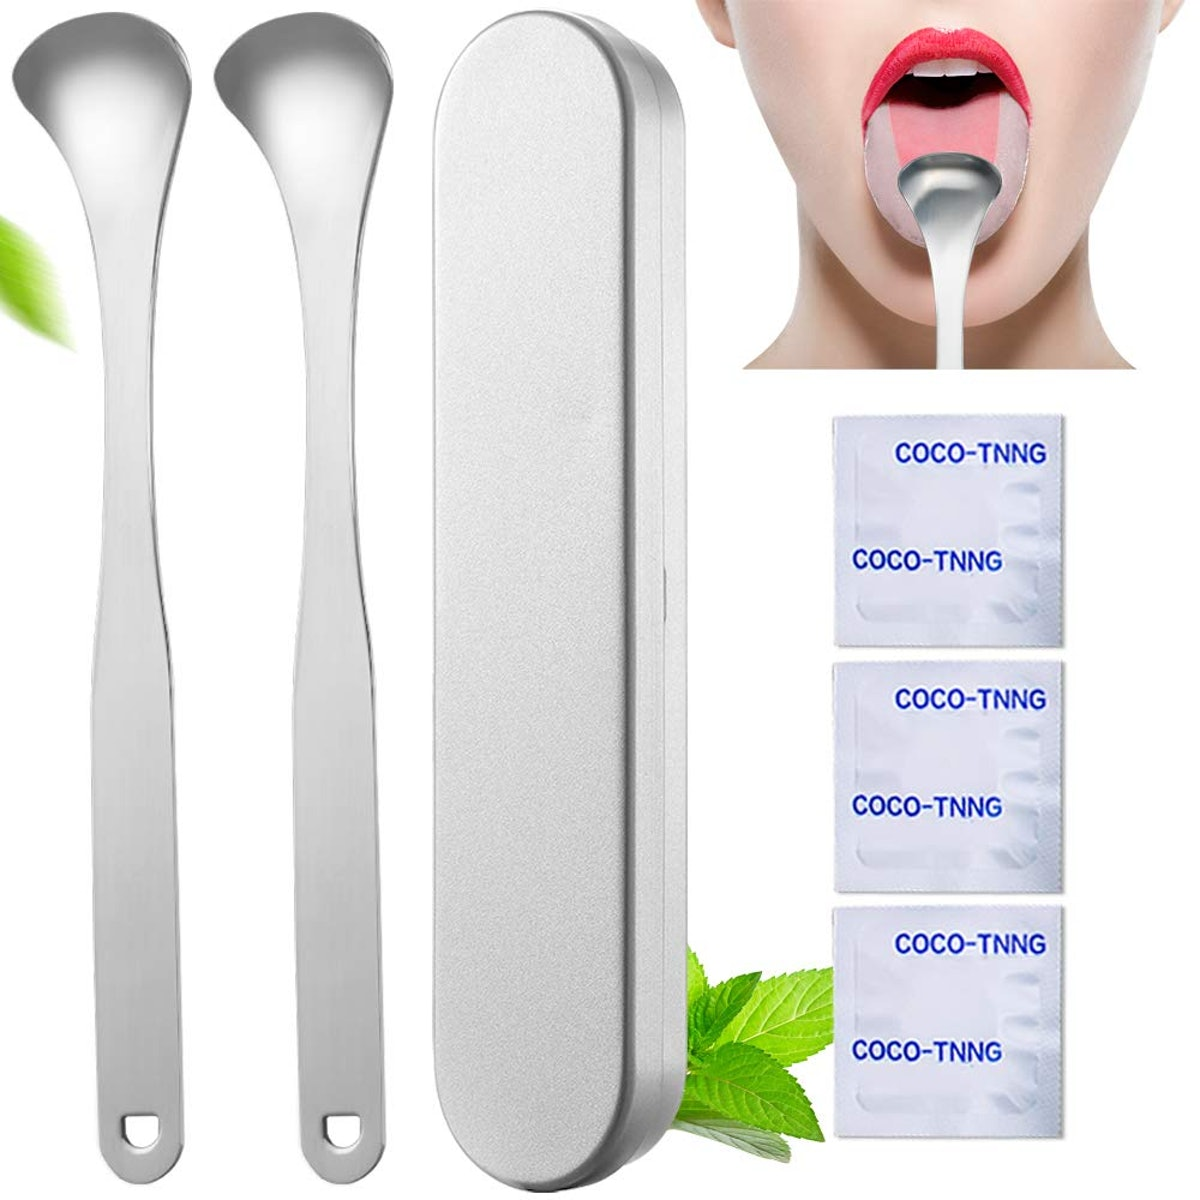 INCOK Stainless Steel Tongue Scraper Cleaner